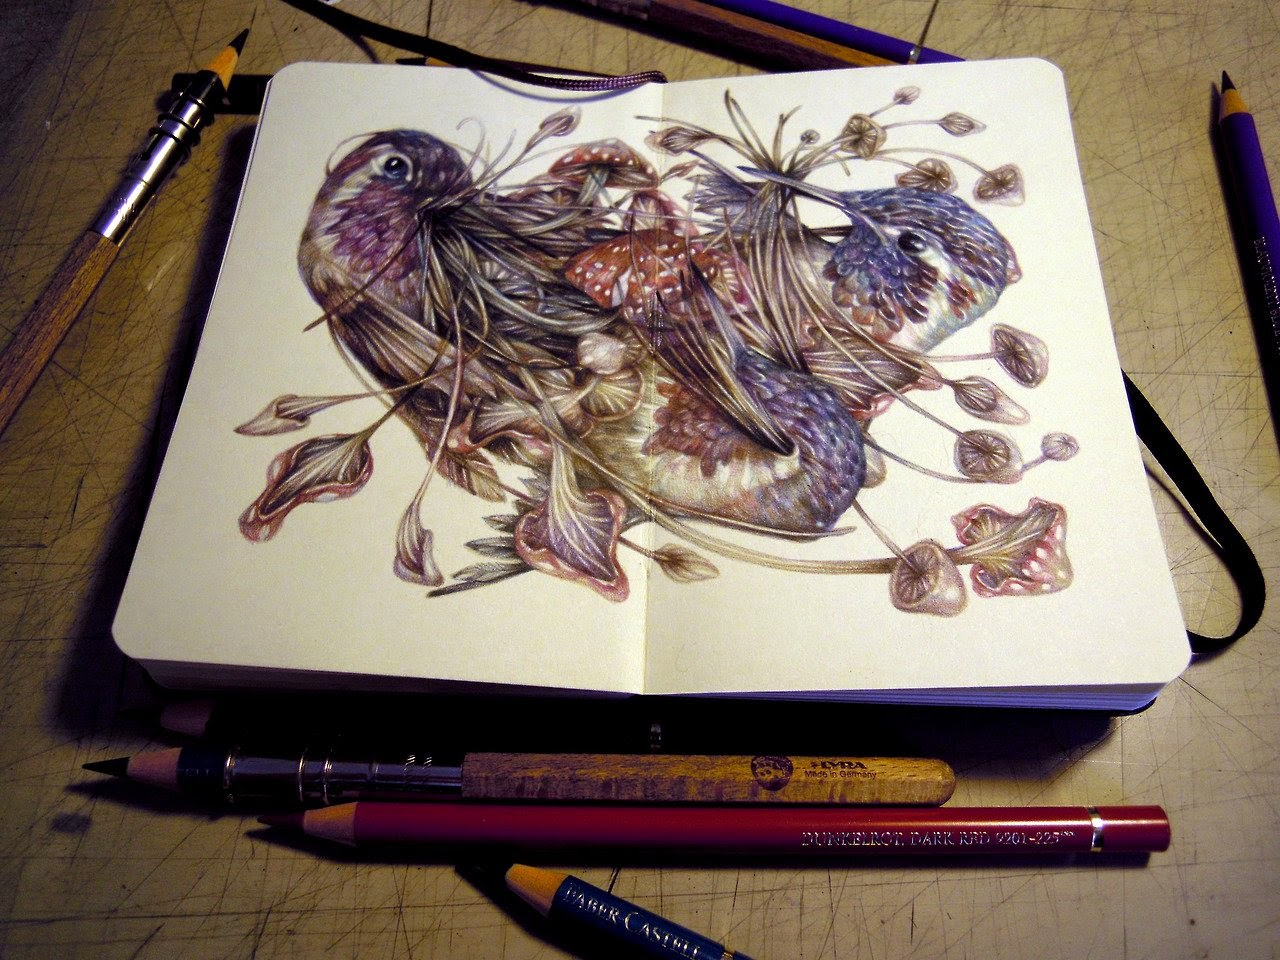 18-Marco-Mazzoni-Surreal-Animal-Drawings-www-designstack-co